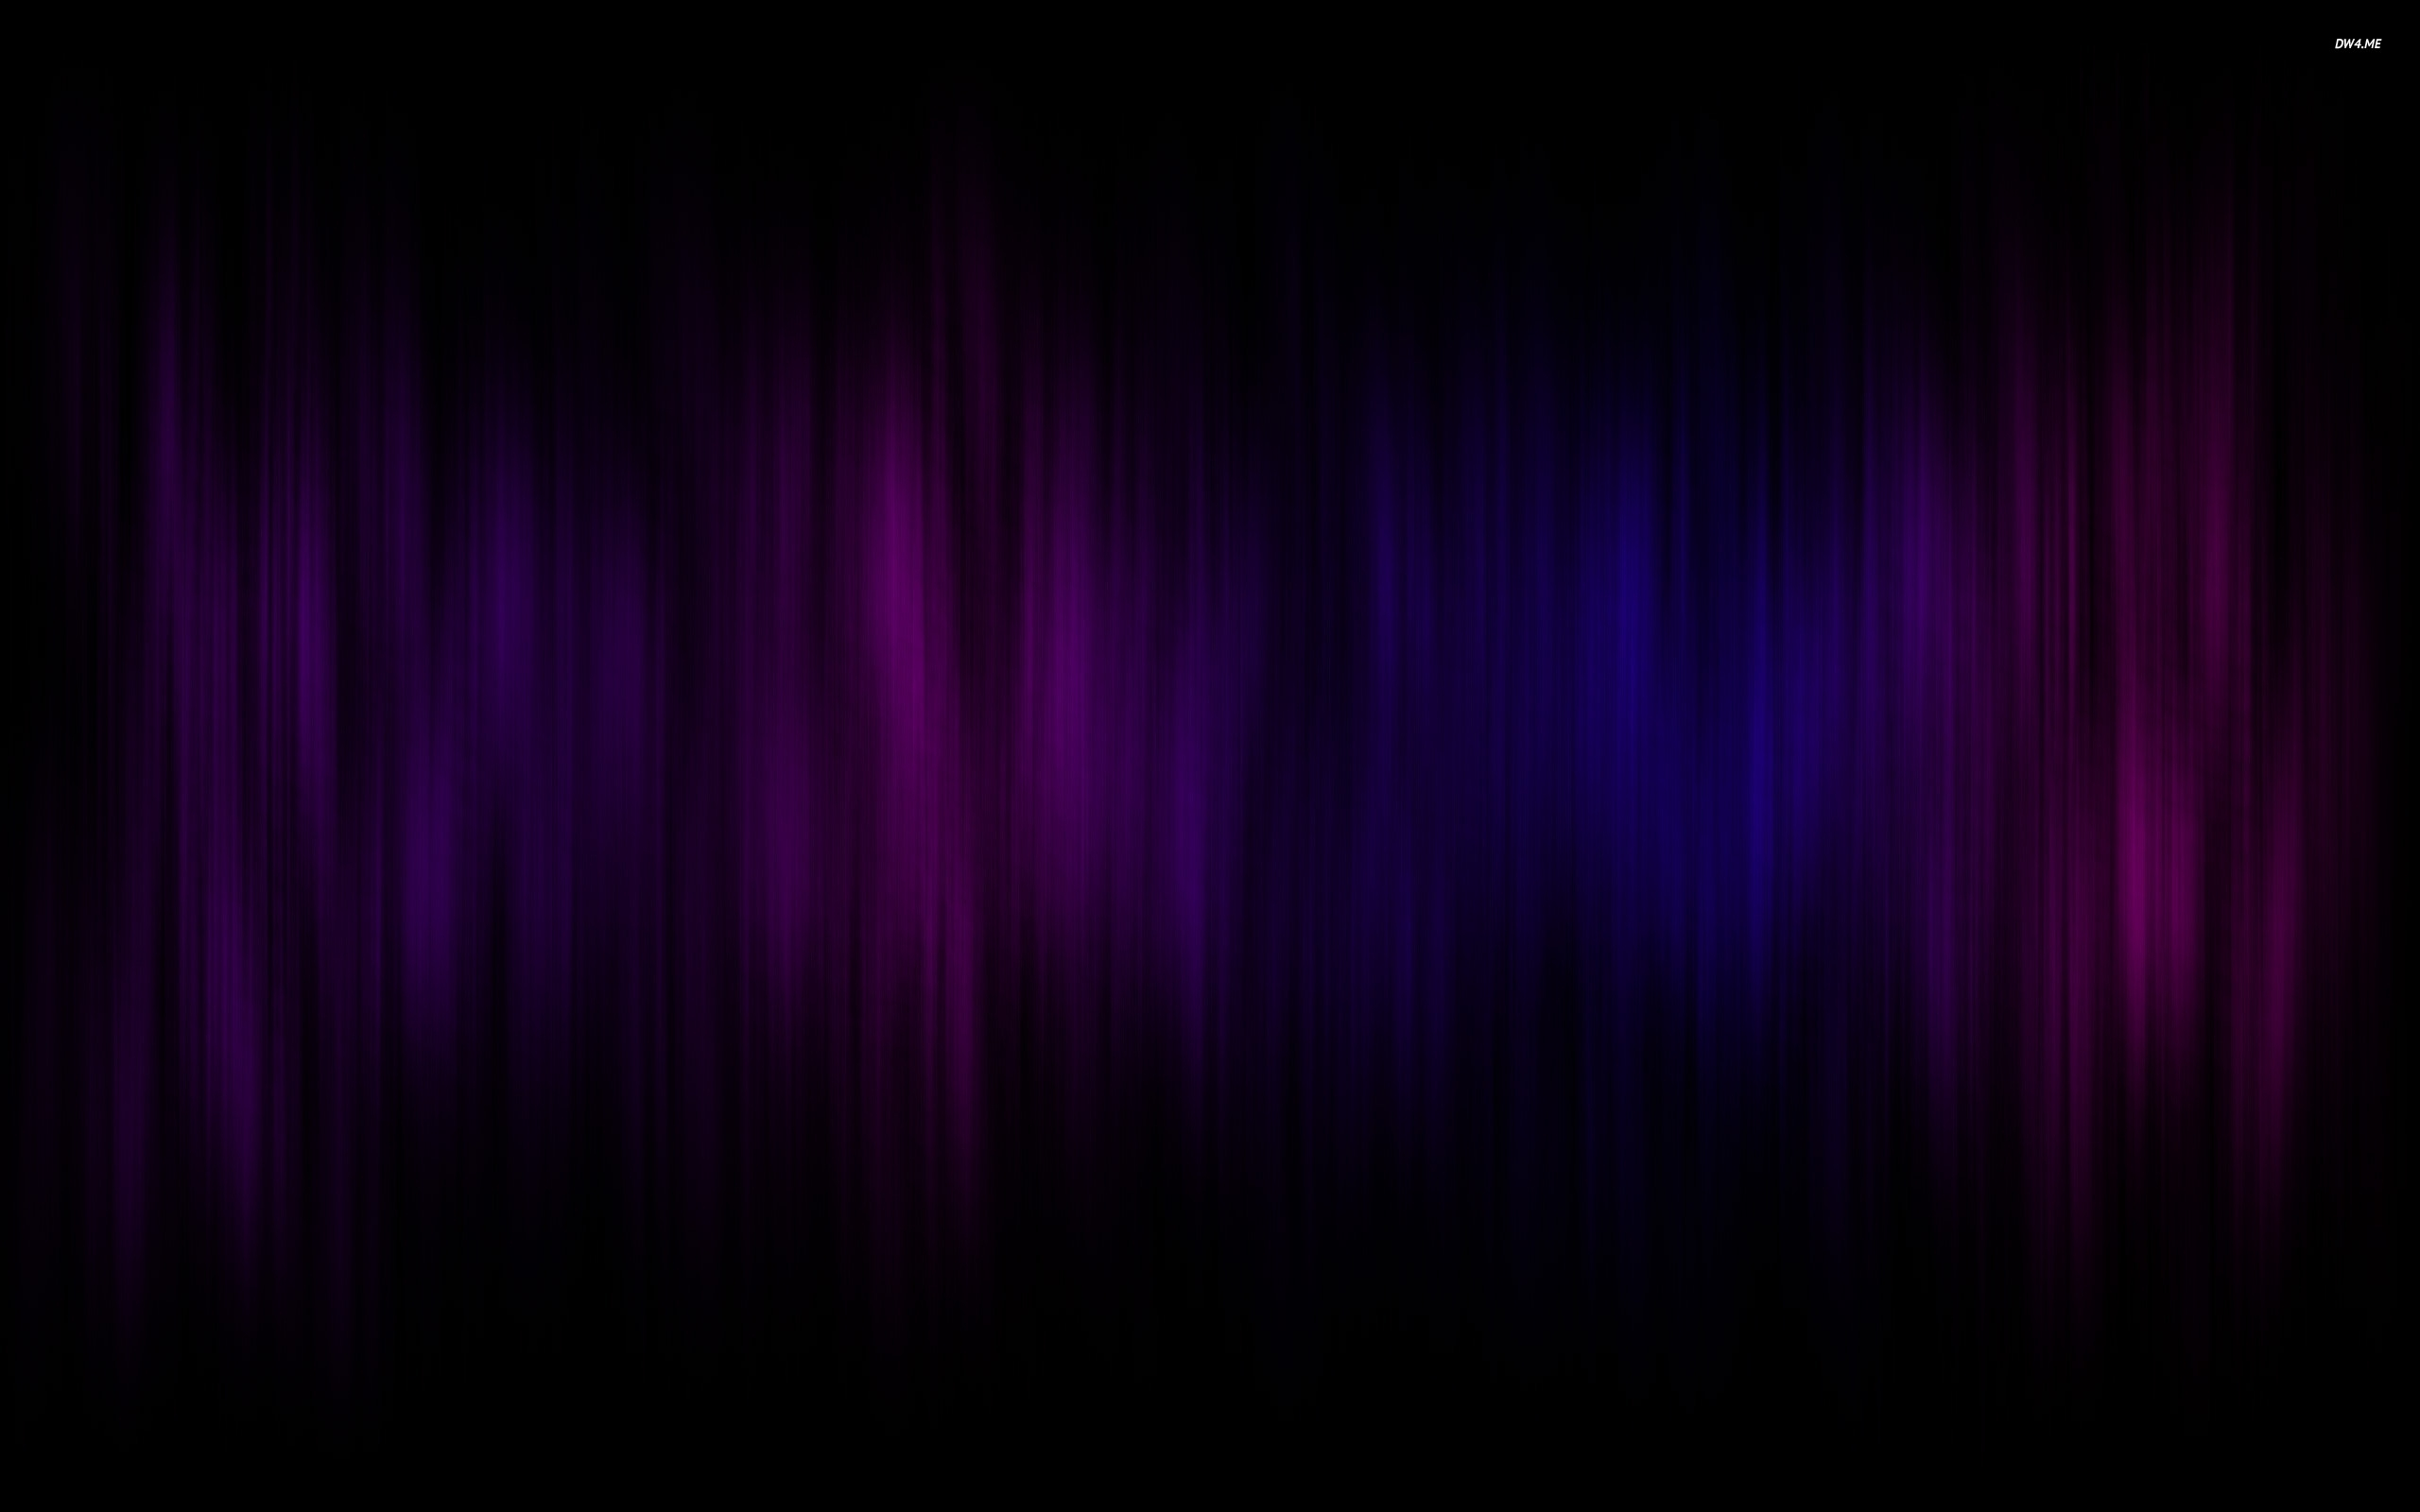 dark purple desktop wallpaper widescreen hd images for iphone